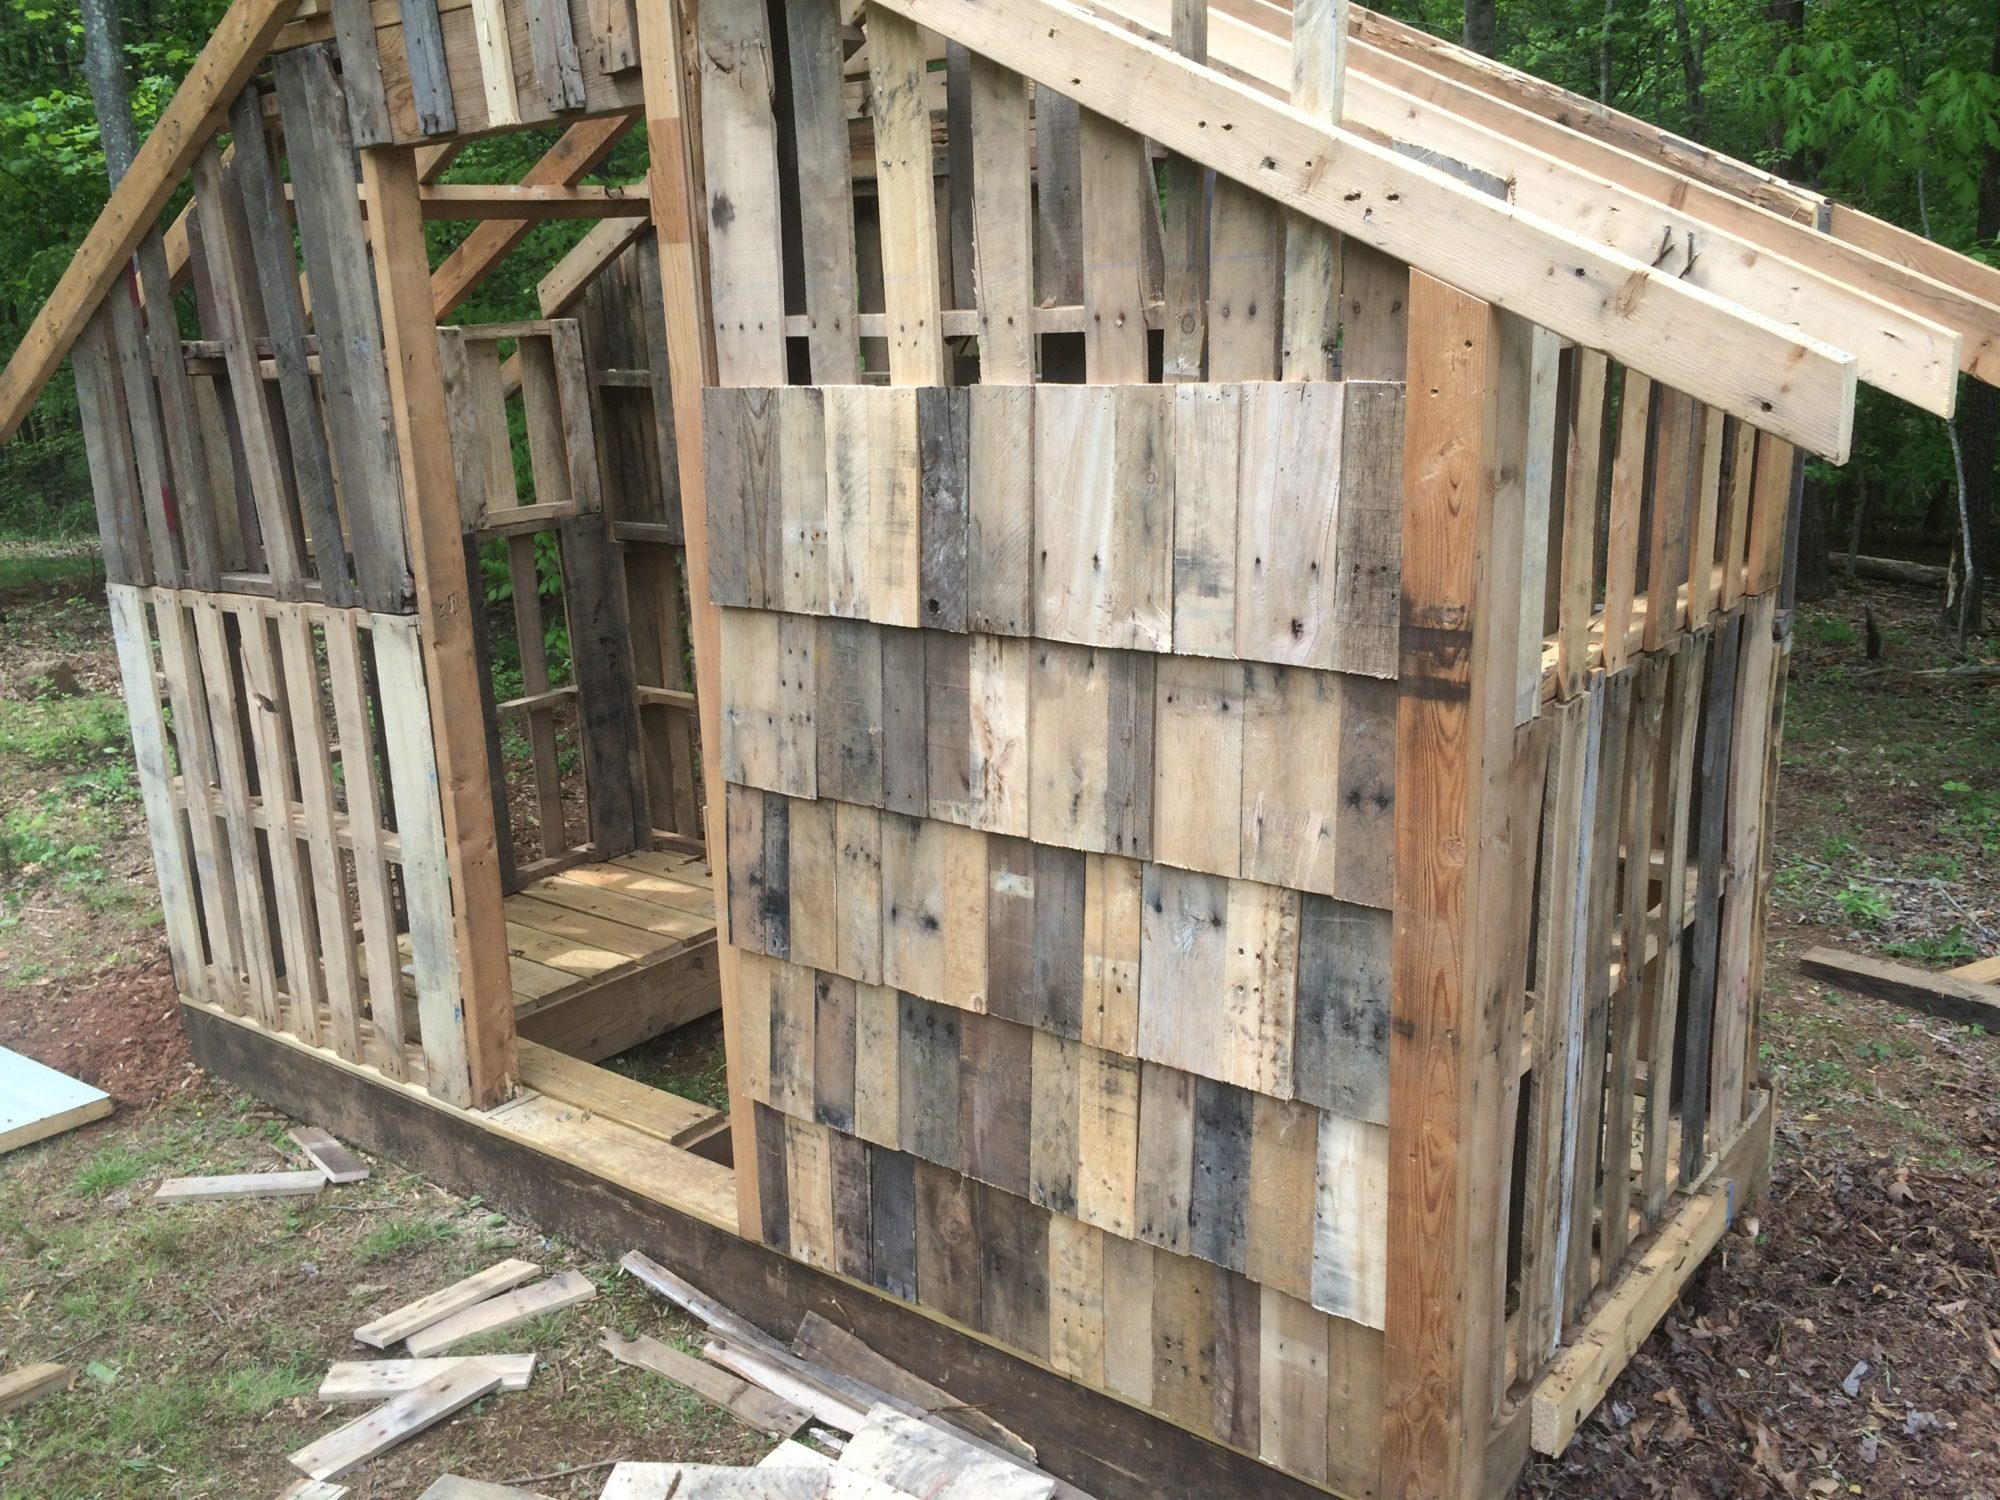 Guide coop pages and member pages tutorial and feedback for How to build a chicken coop from wooden pallets